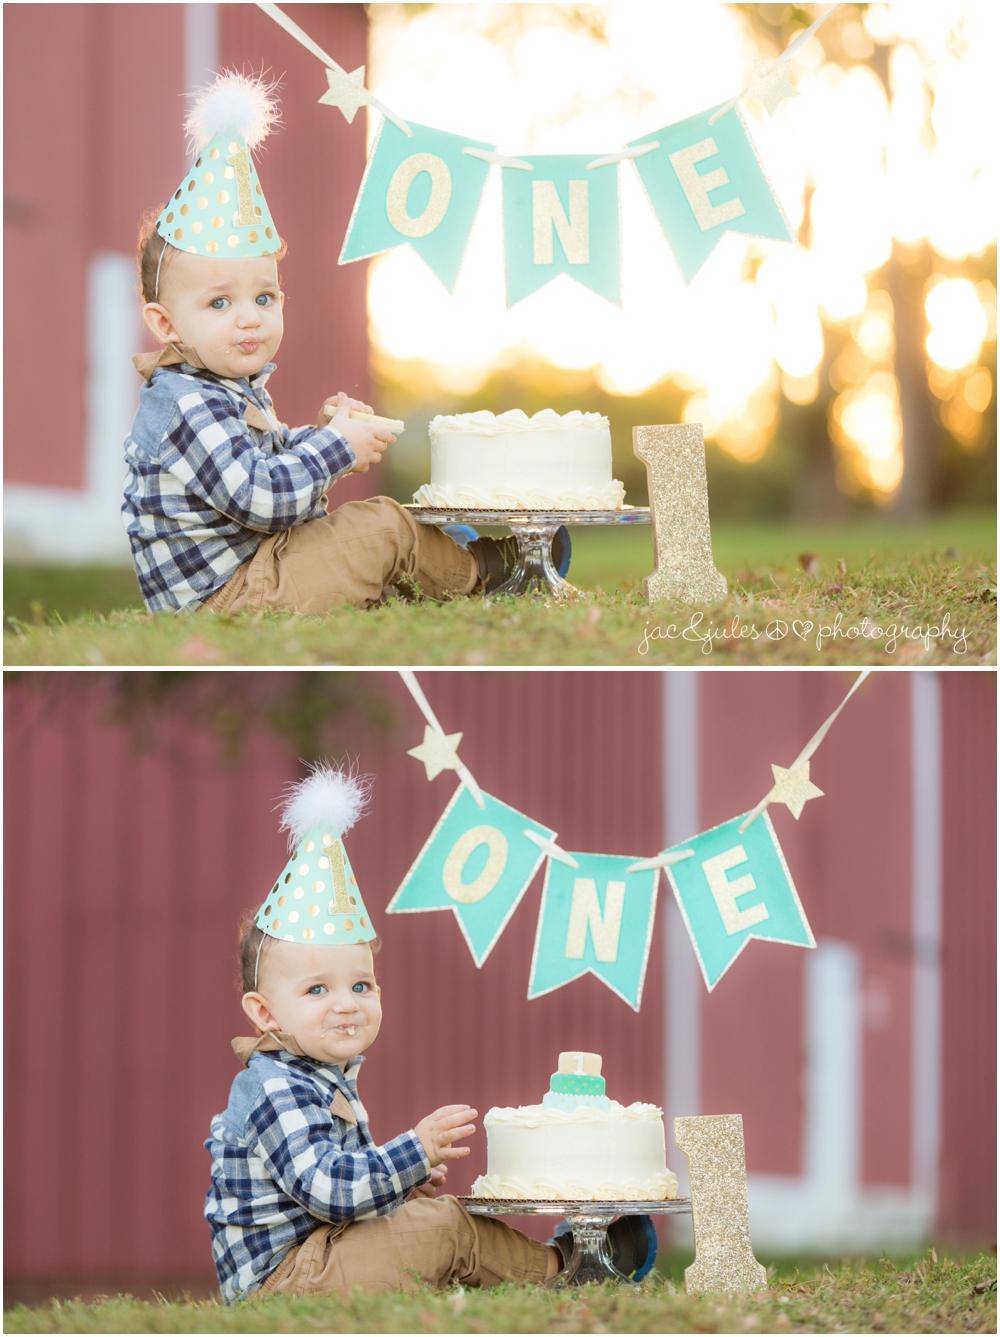 jacnjules photographs 1st birthday at bayonet farm in holmdel nj